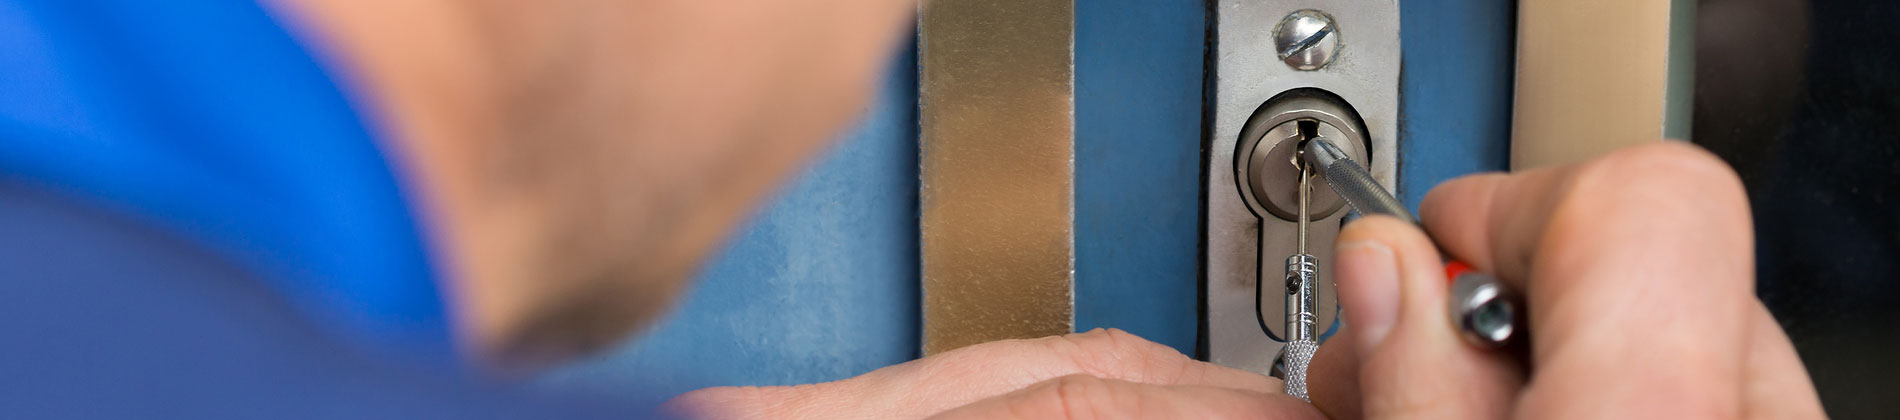 Locksmith gains entry by lock picking